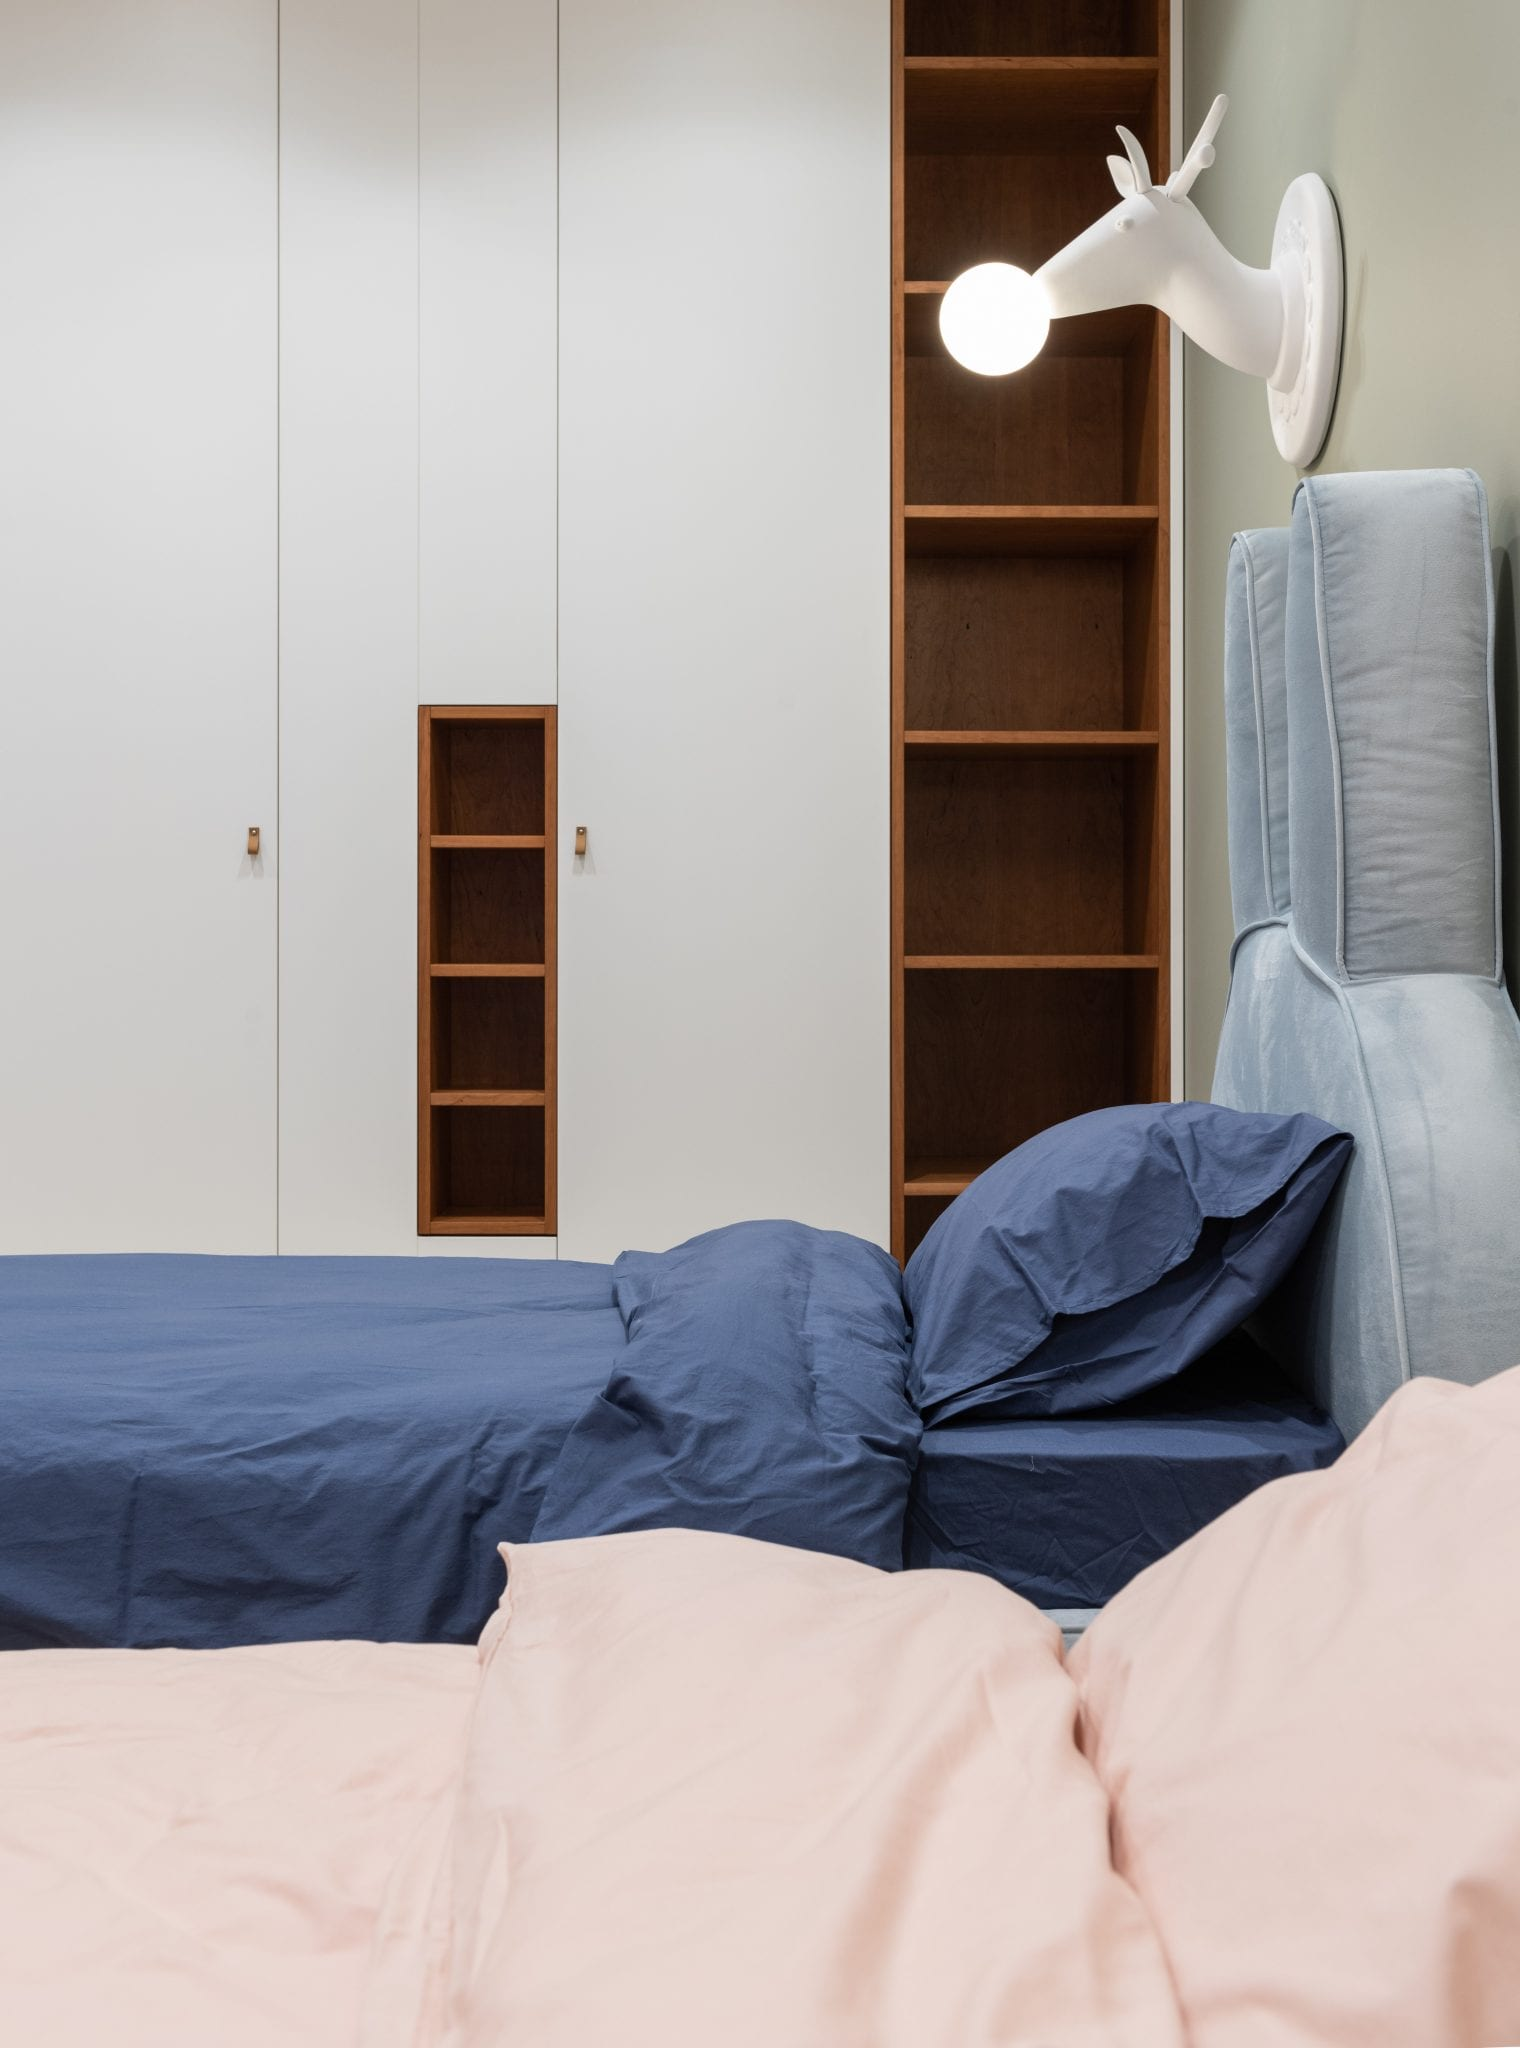 A twin bed with navy sheets and a twin bed with baby pink sheets are side by side in a bedroom with a deer shaped lamp.